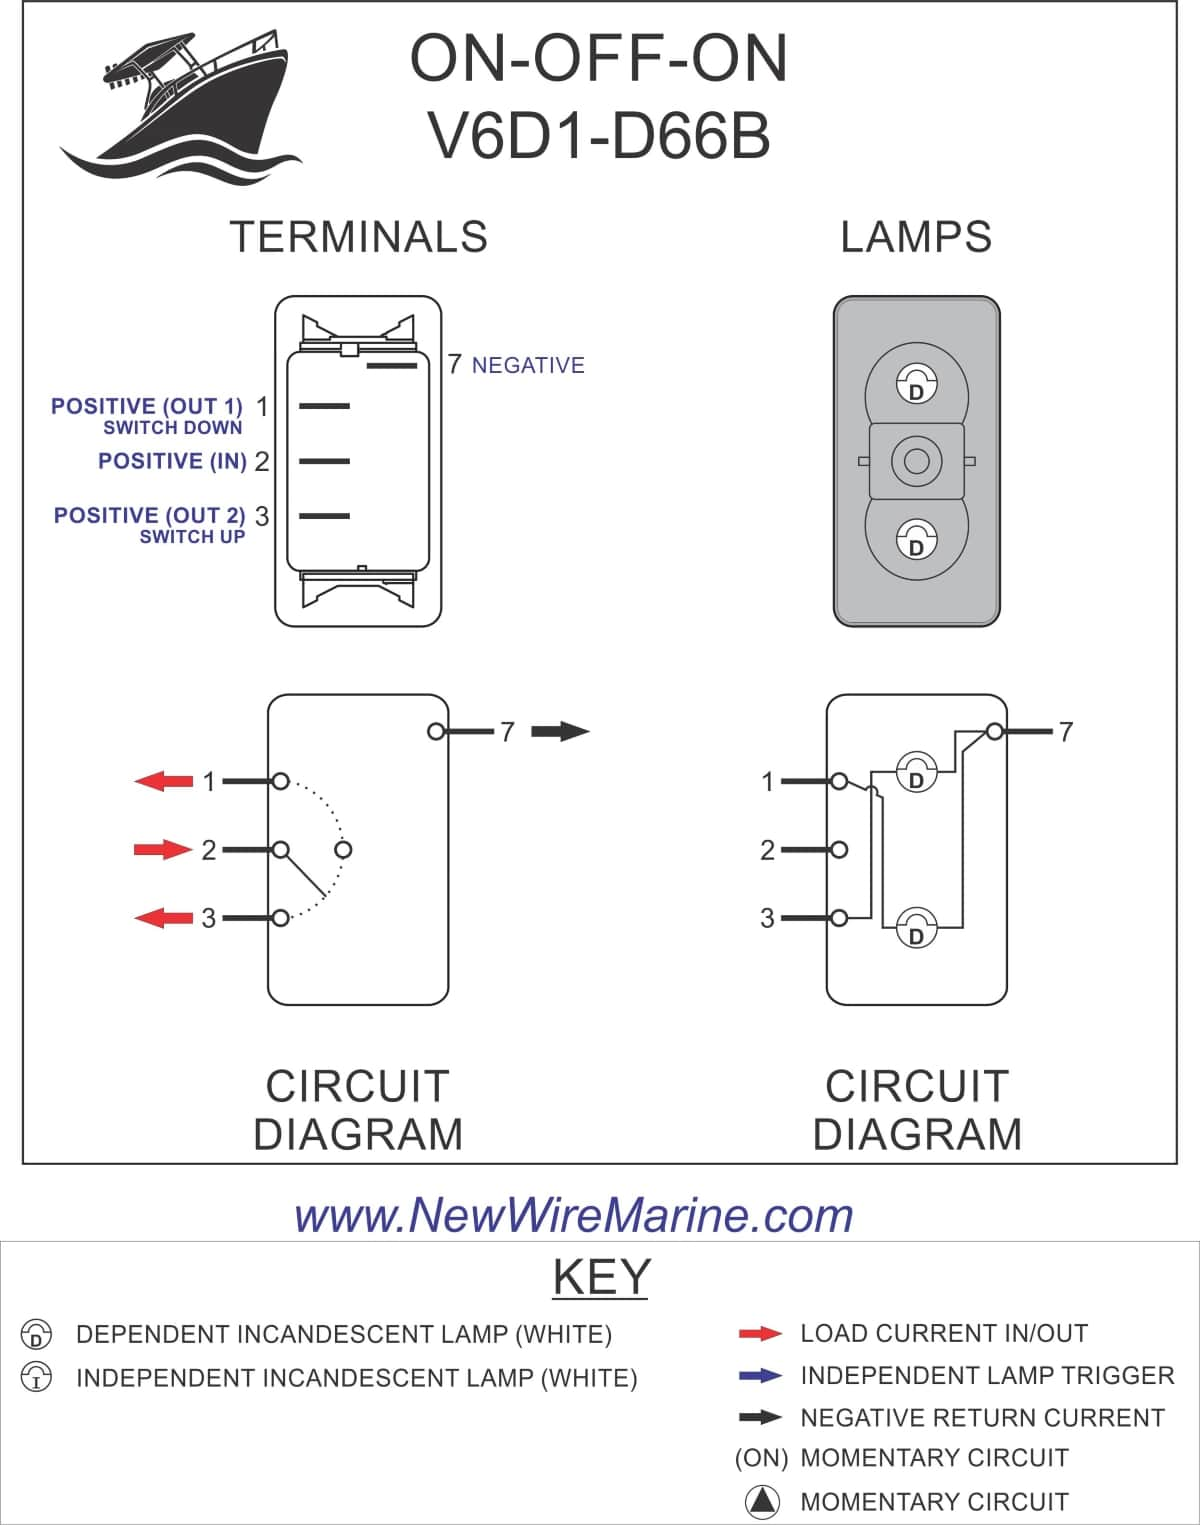 3 Prong Switch Wiring : prong, switch, wiring, Livewell, Fill/Aerate, Rocker, Switch, Carling, Contura, Illuminated, Accessory